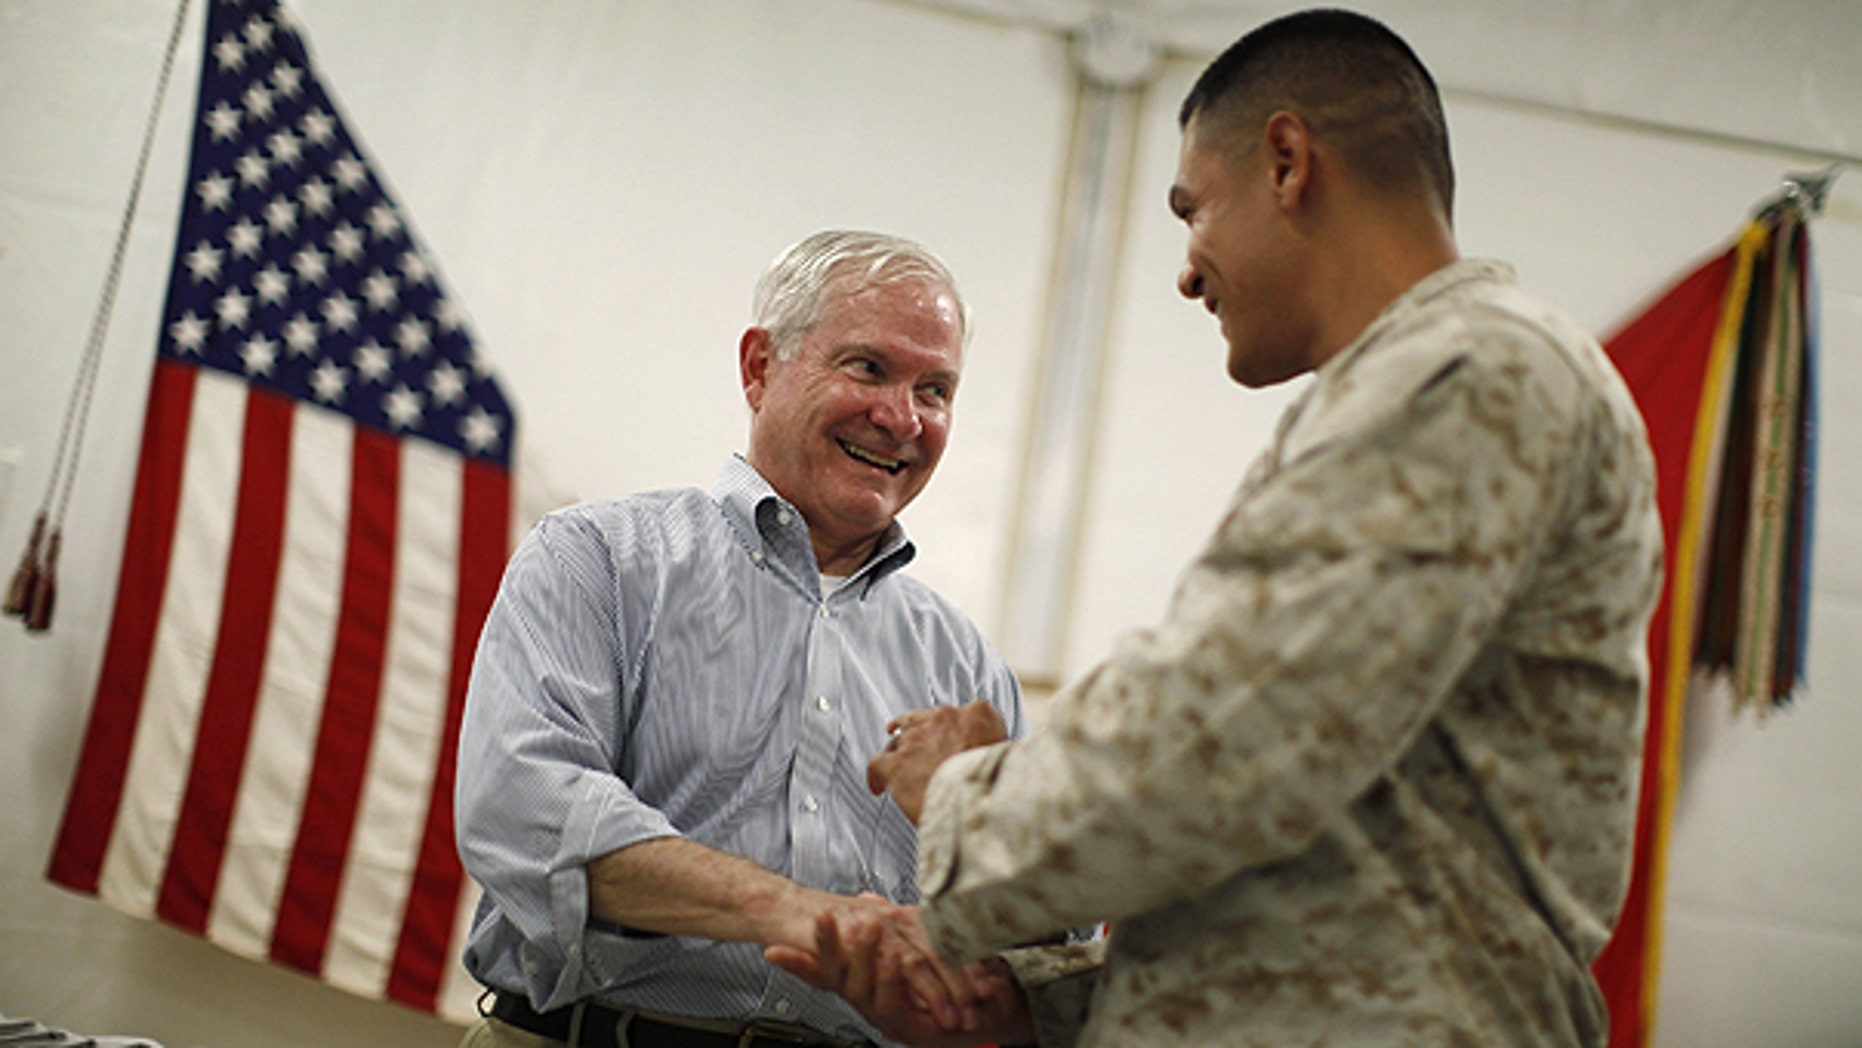 June 5: U.S. Secretary of Defense Robert Gates, left, talks with a U.S. Marine at Forward Operating Base (FOB) Dwyer, Afghanistan.